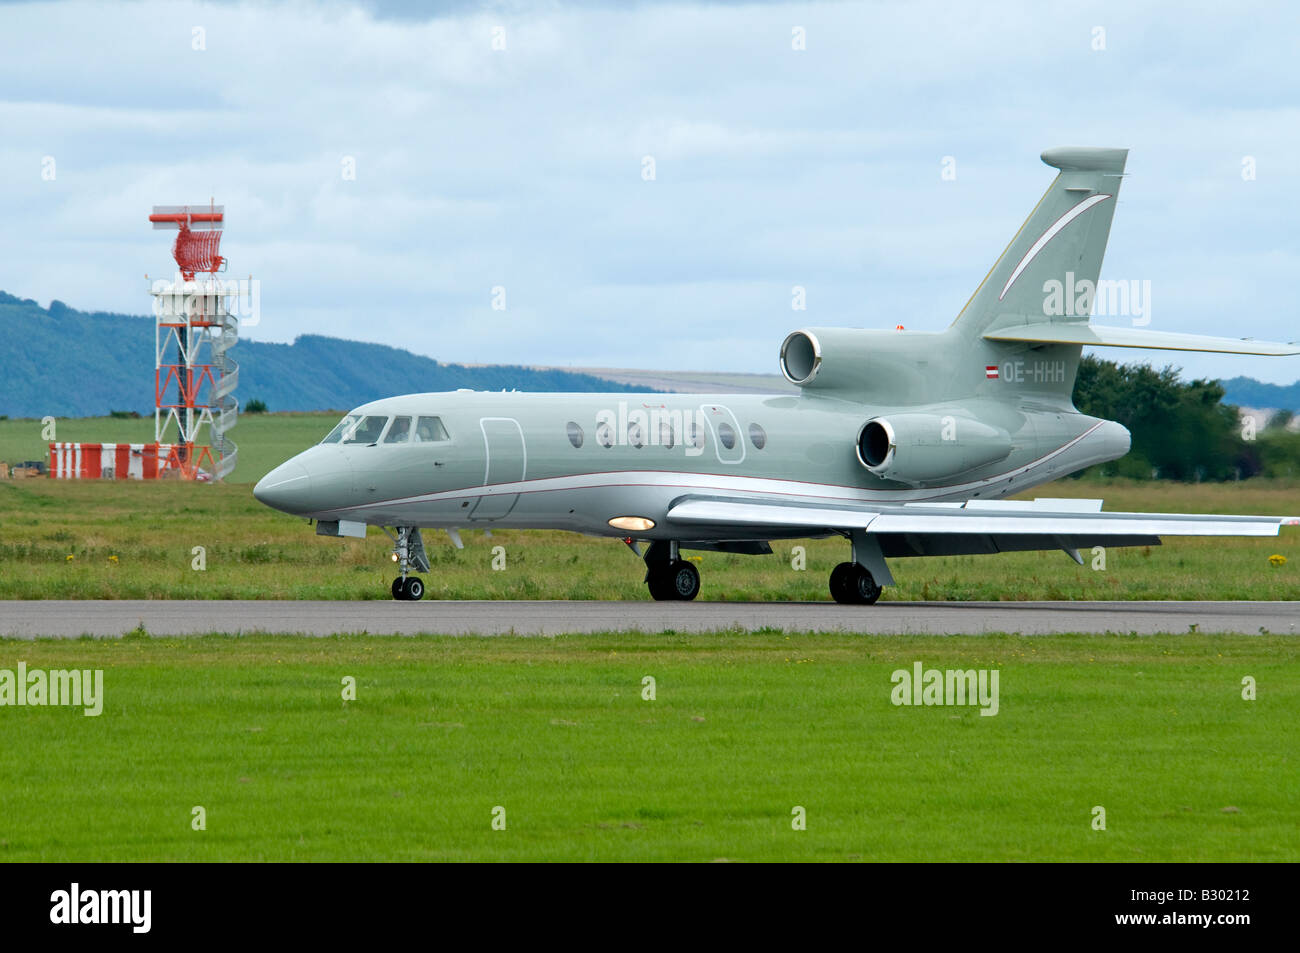 Dassault Falcon 50EX Three Engined Jet Aircraft on the runway arriving at Inverness Airport. - Stock Image